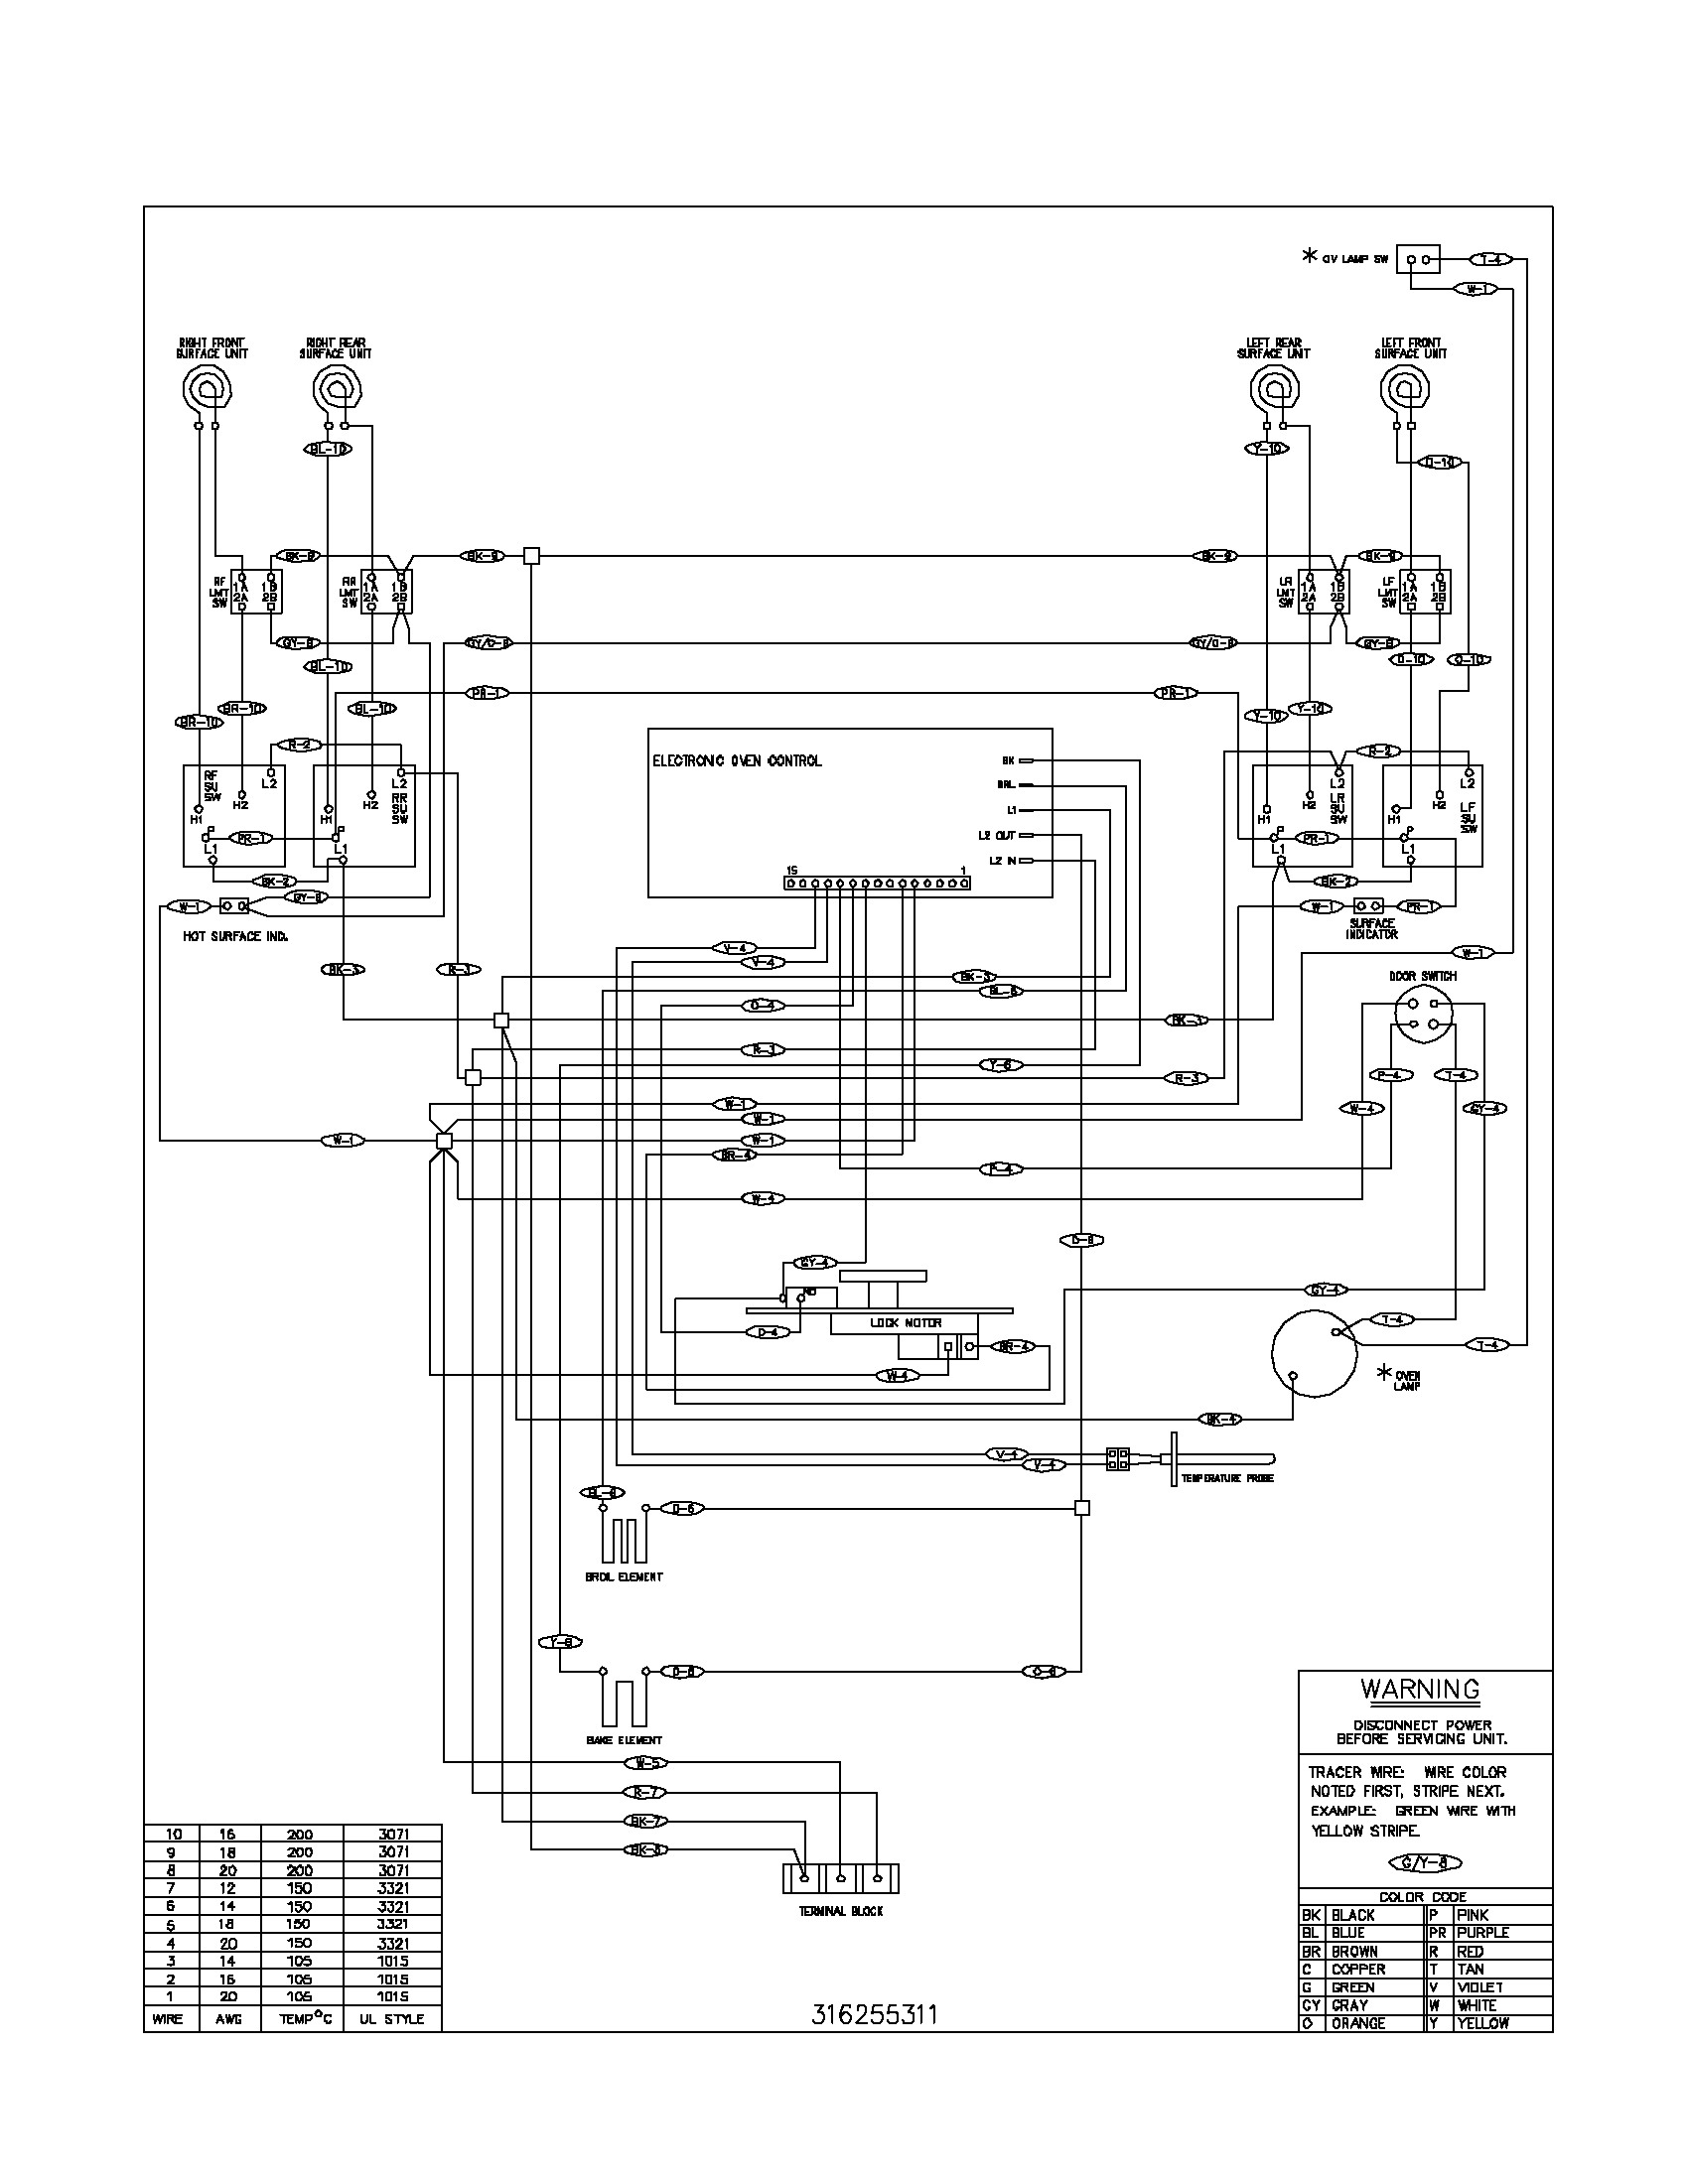 Schneider Electric Wiring Diagram 8903